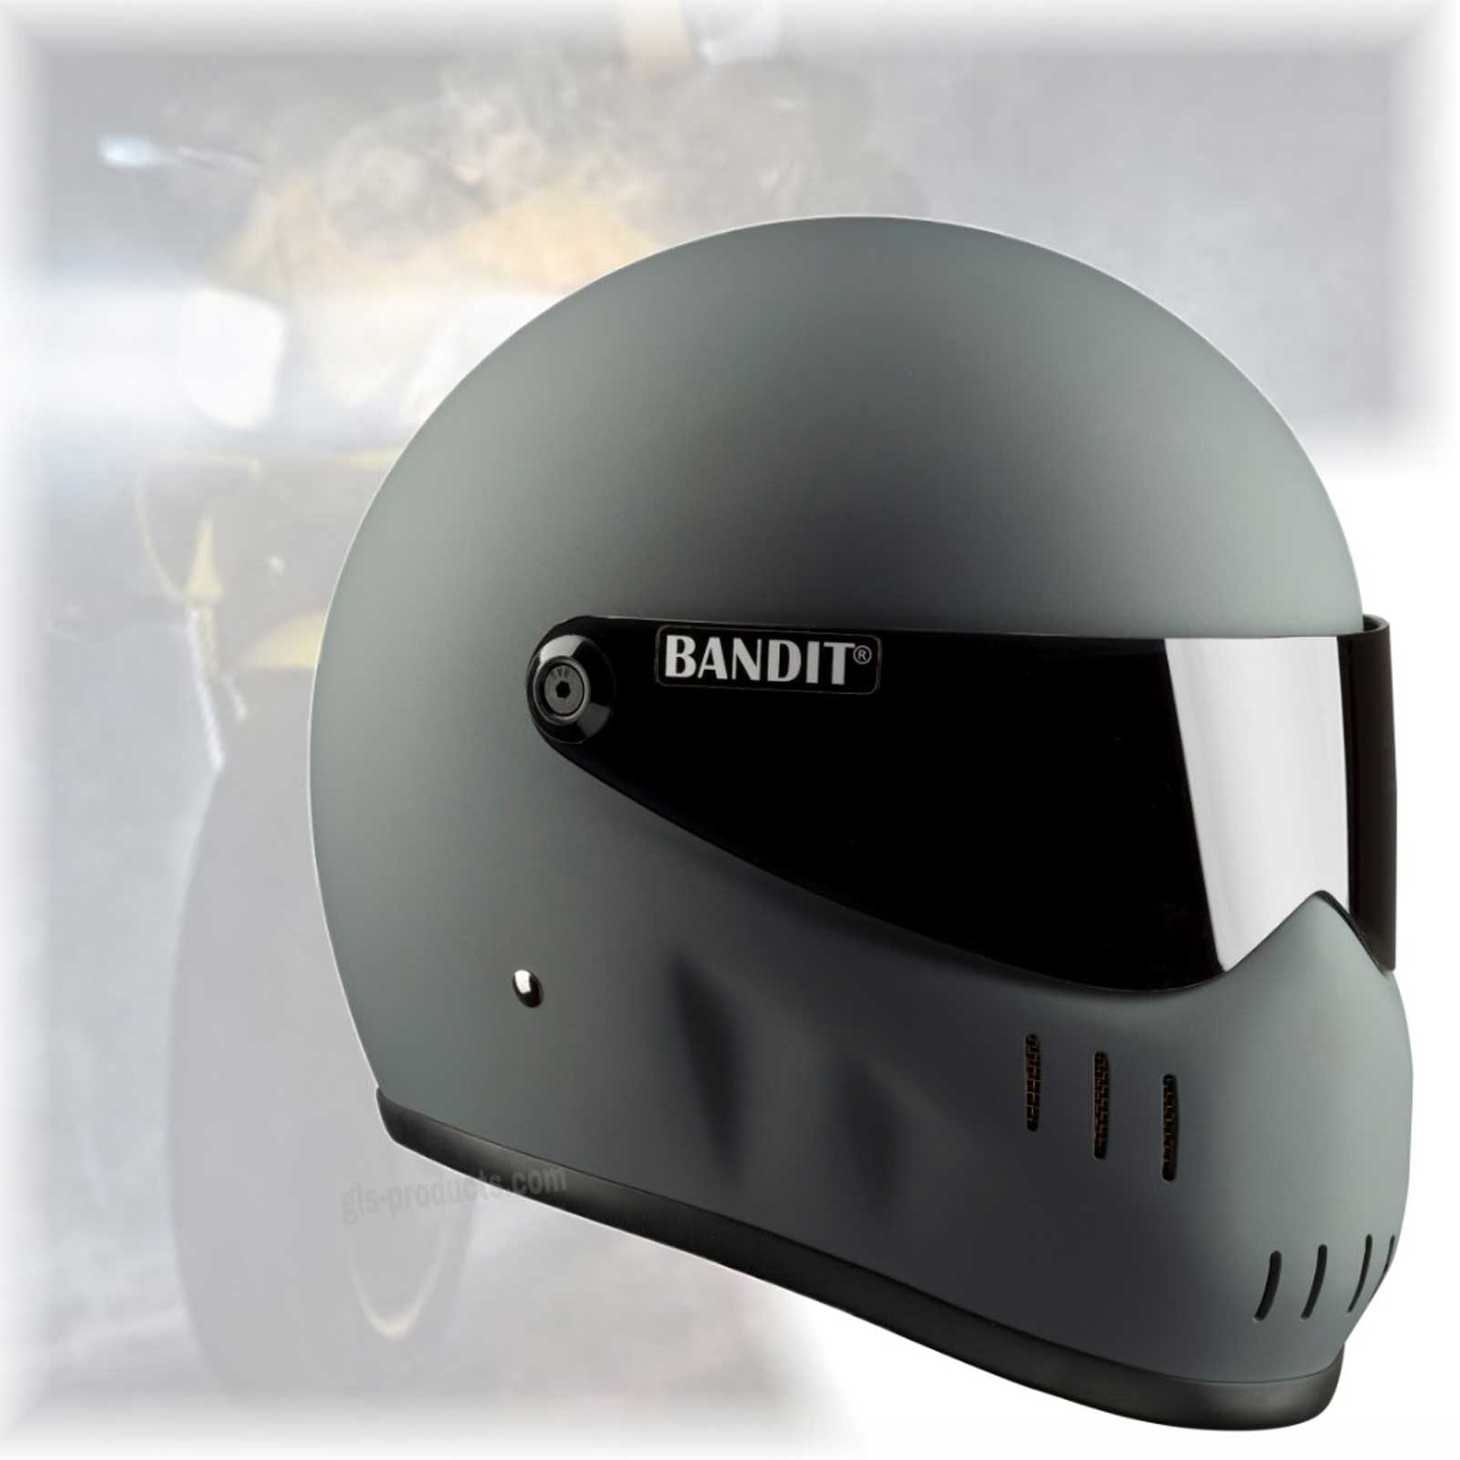 Bandit - XXR - New Motorcycle Helmet - for Streetfighter, Mad Max – Picture 2